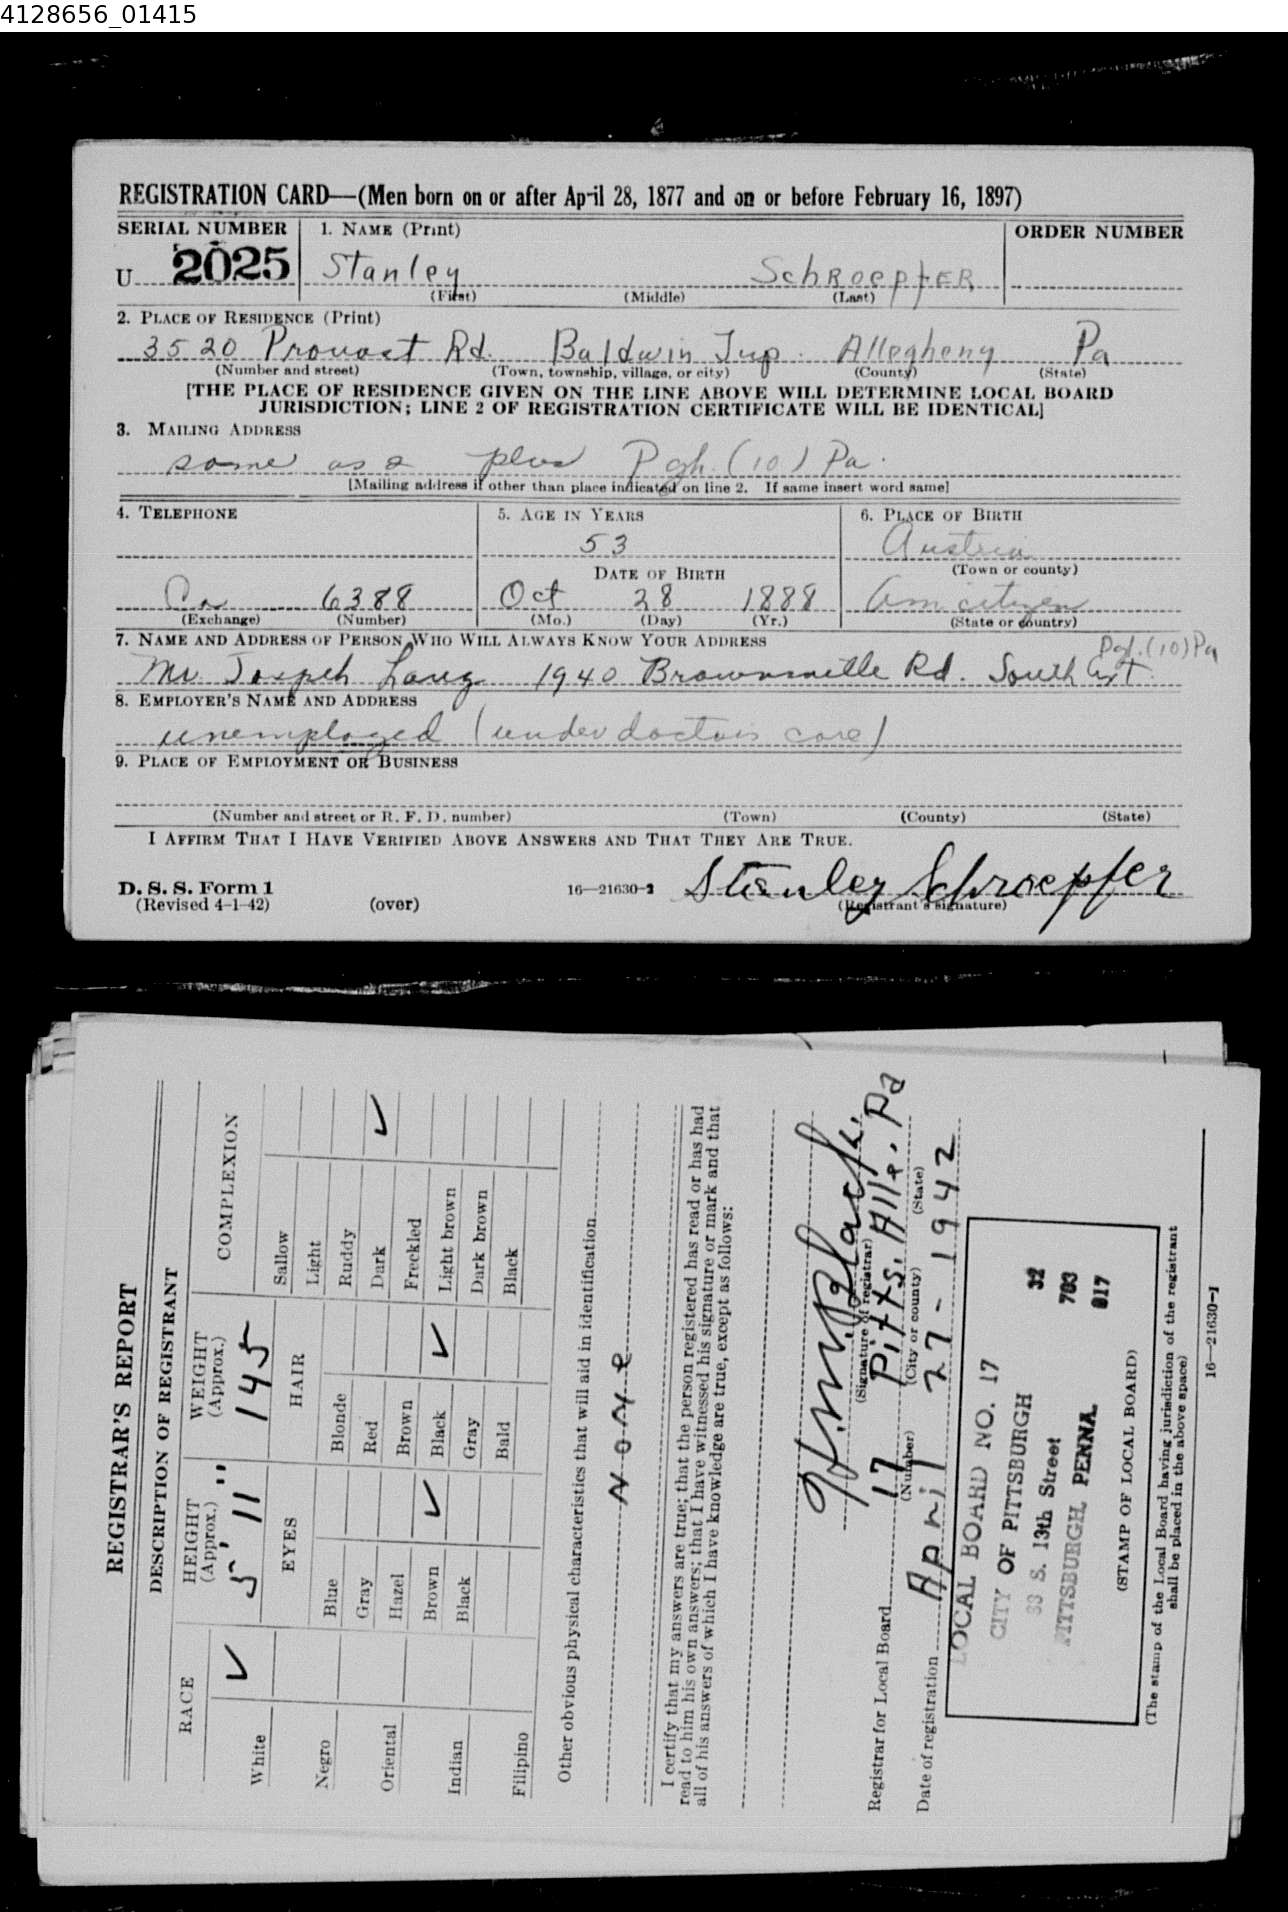 stanley schroepfer world war II registration